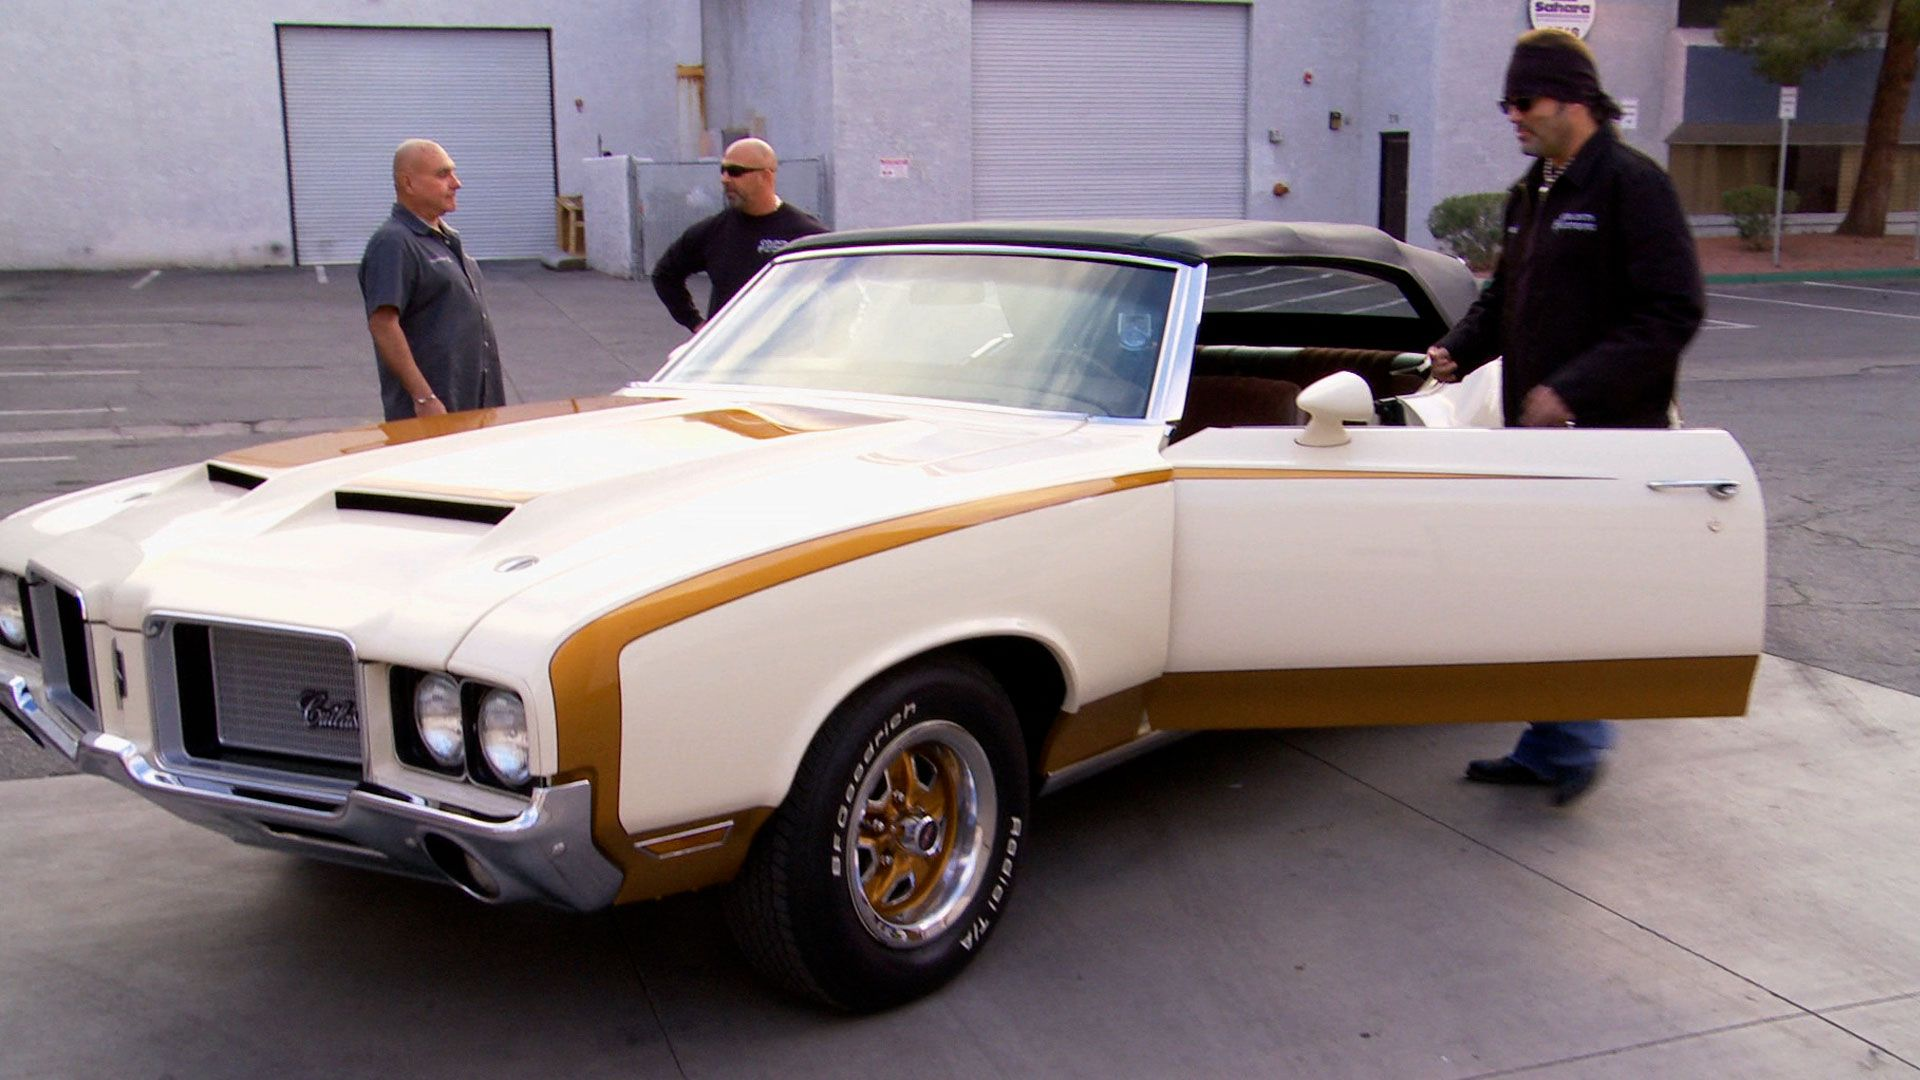 Count The Cars At Count S Kustoms Las Vegas Counting Cars On The